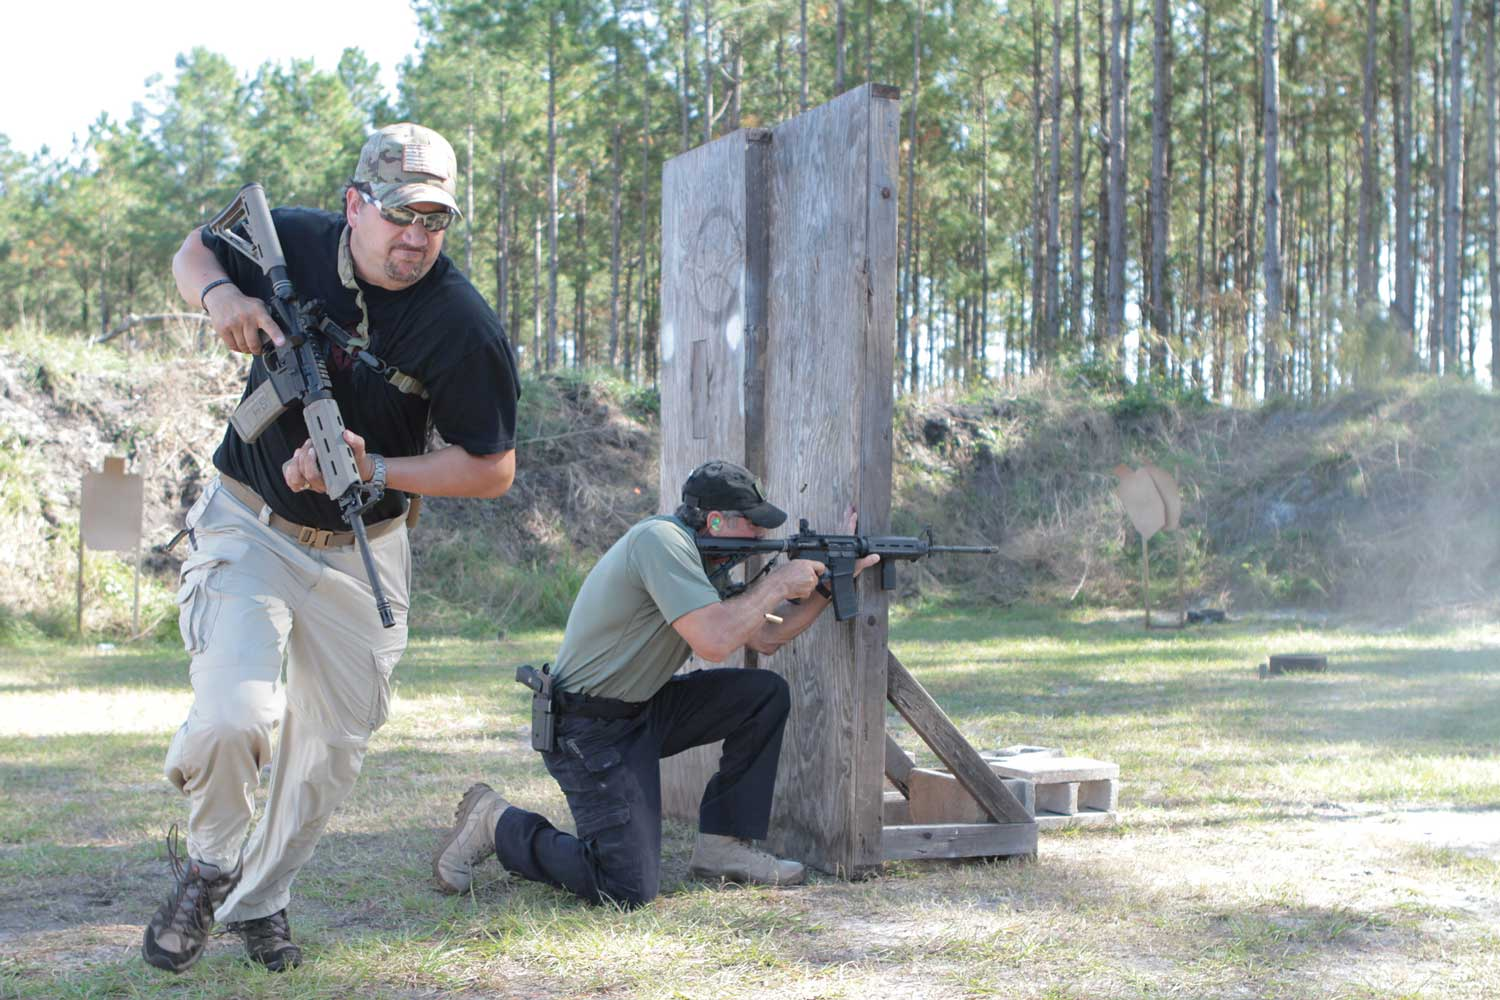 Two men shooting AR-15 rifles while moving through a tactical course.